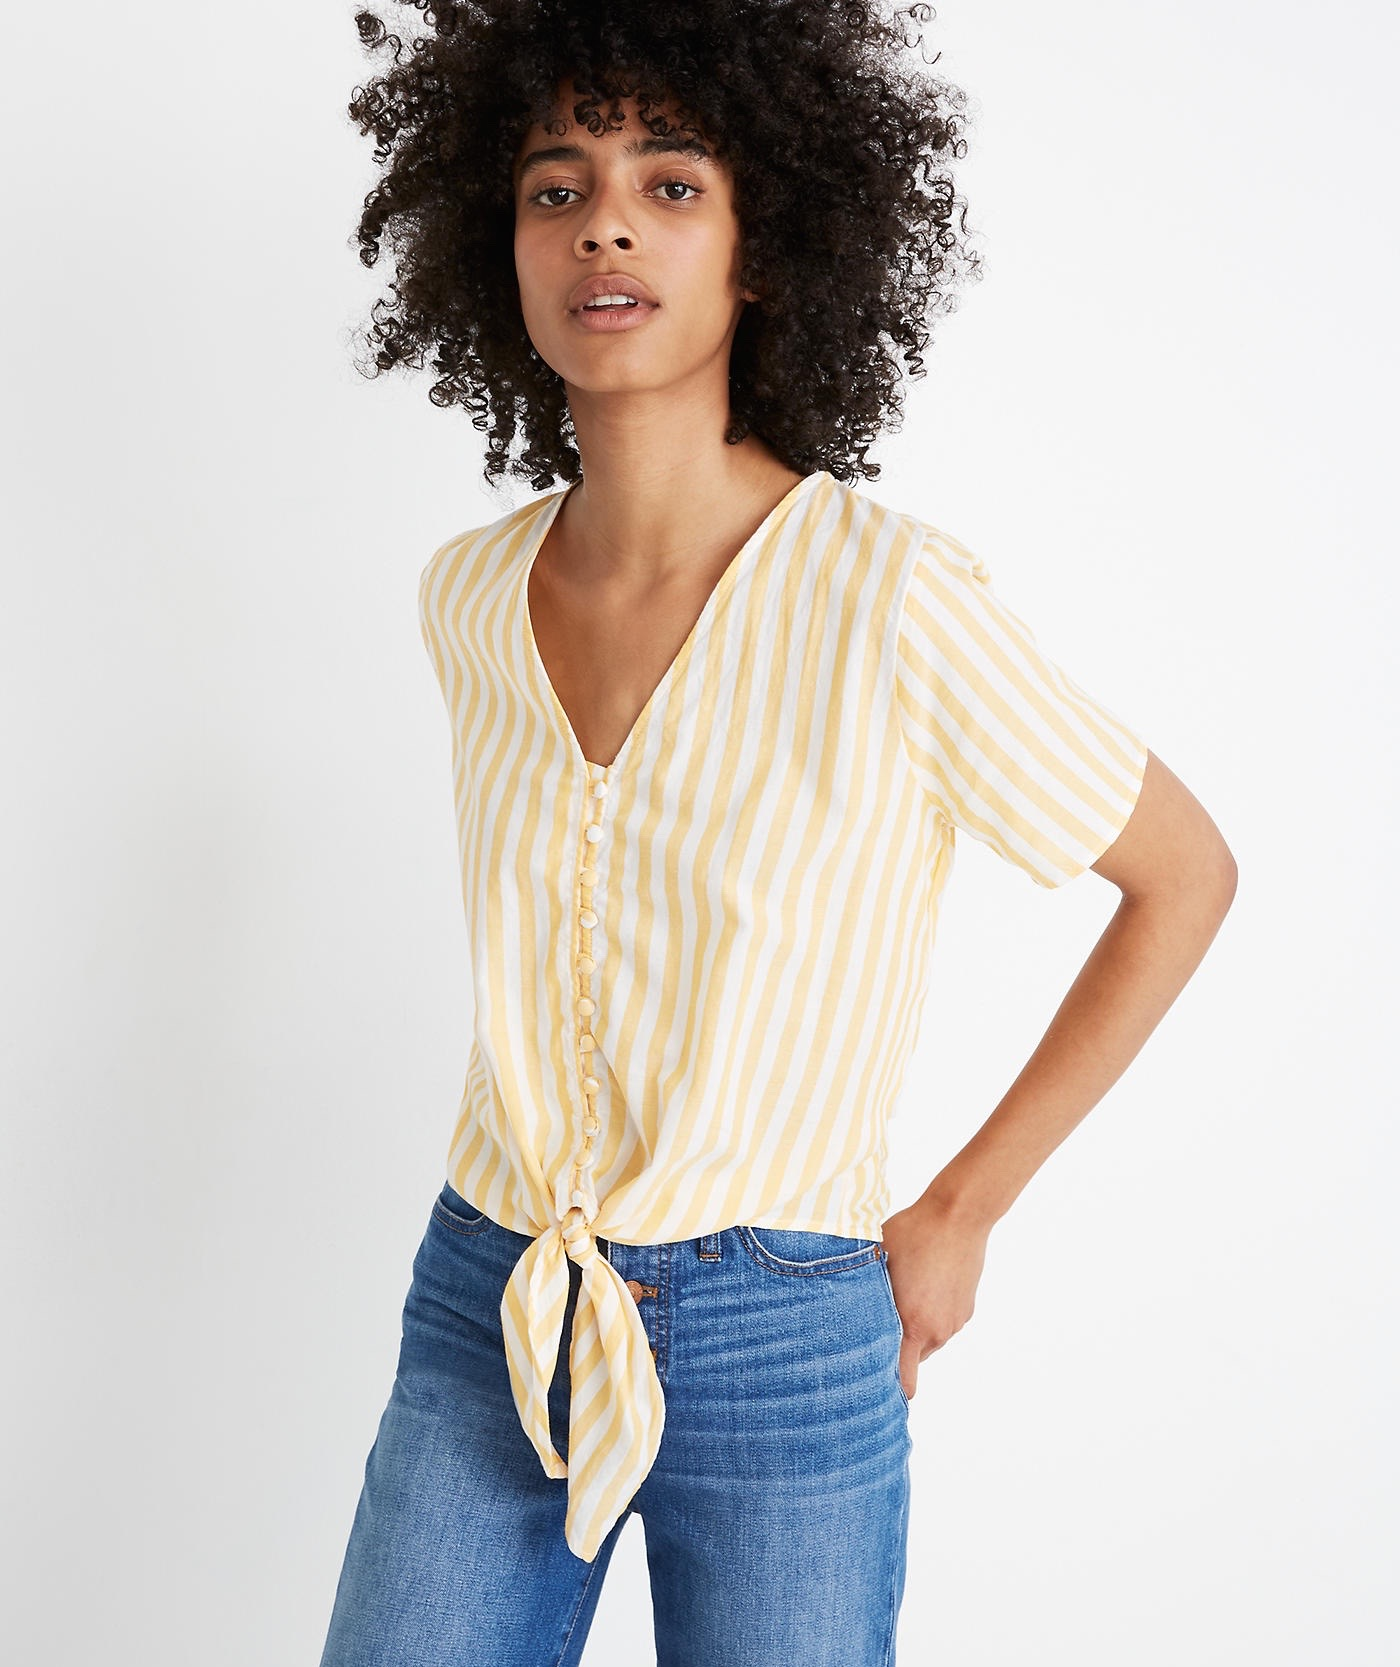 Striped shirt by Madewell